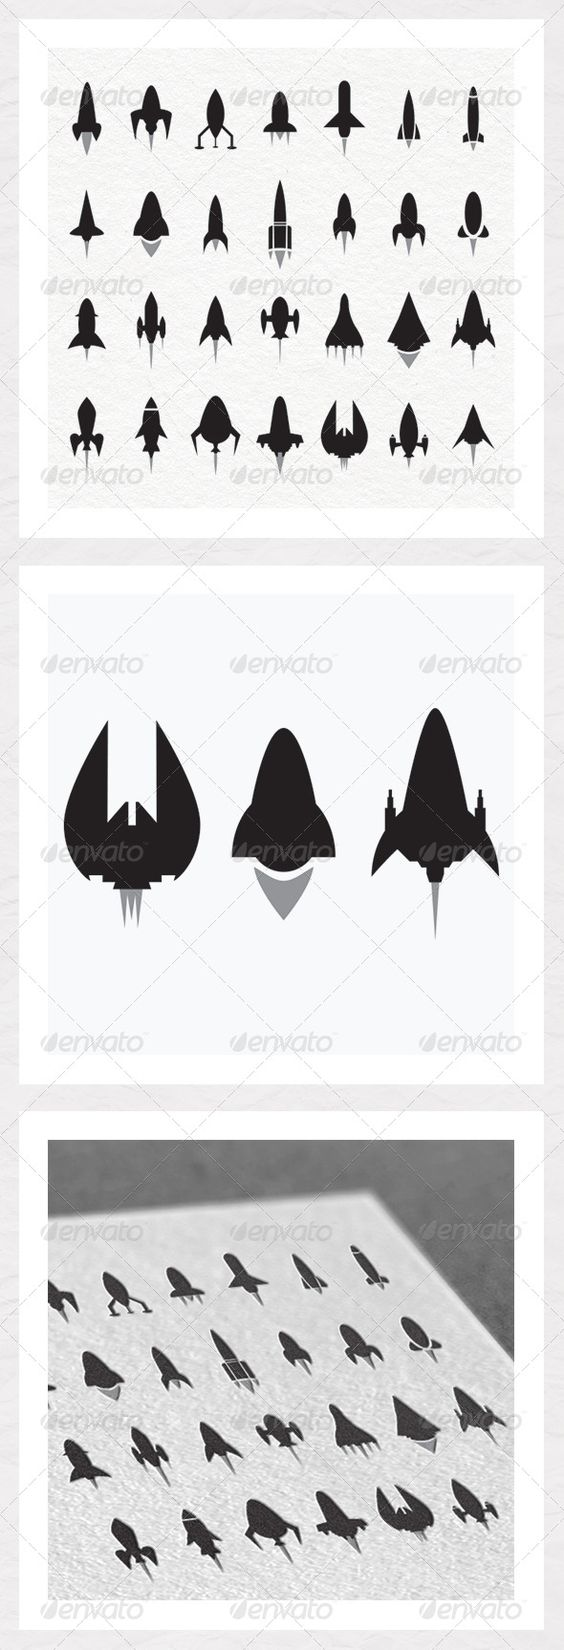 Rocket and Spaceship Silhouettes #GraphicRiver Rocket and Spaceship Silhouettes for your next project. Technical Information: CMYK 300dpi for print and web. 100% vector shapes. In the zip we have: EPS 10 file. PDF info file. Feel free to send photos of the silhouettes in use and please rate if you have a minute. Thank you. Created: 2May13 GraphicsFilesIncluded: VectorEPS Layered: No MinimumAdobeCSVersion: CS Tags: aviation